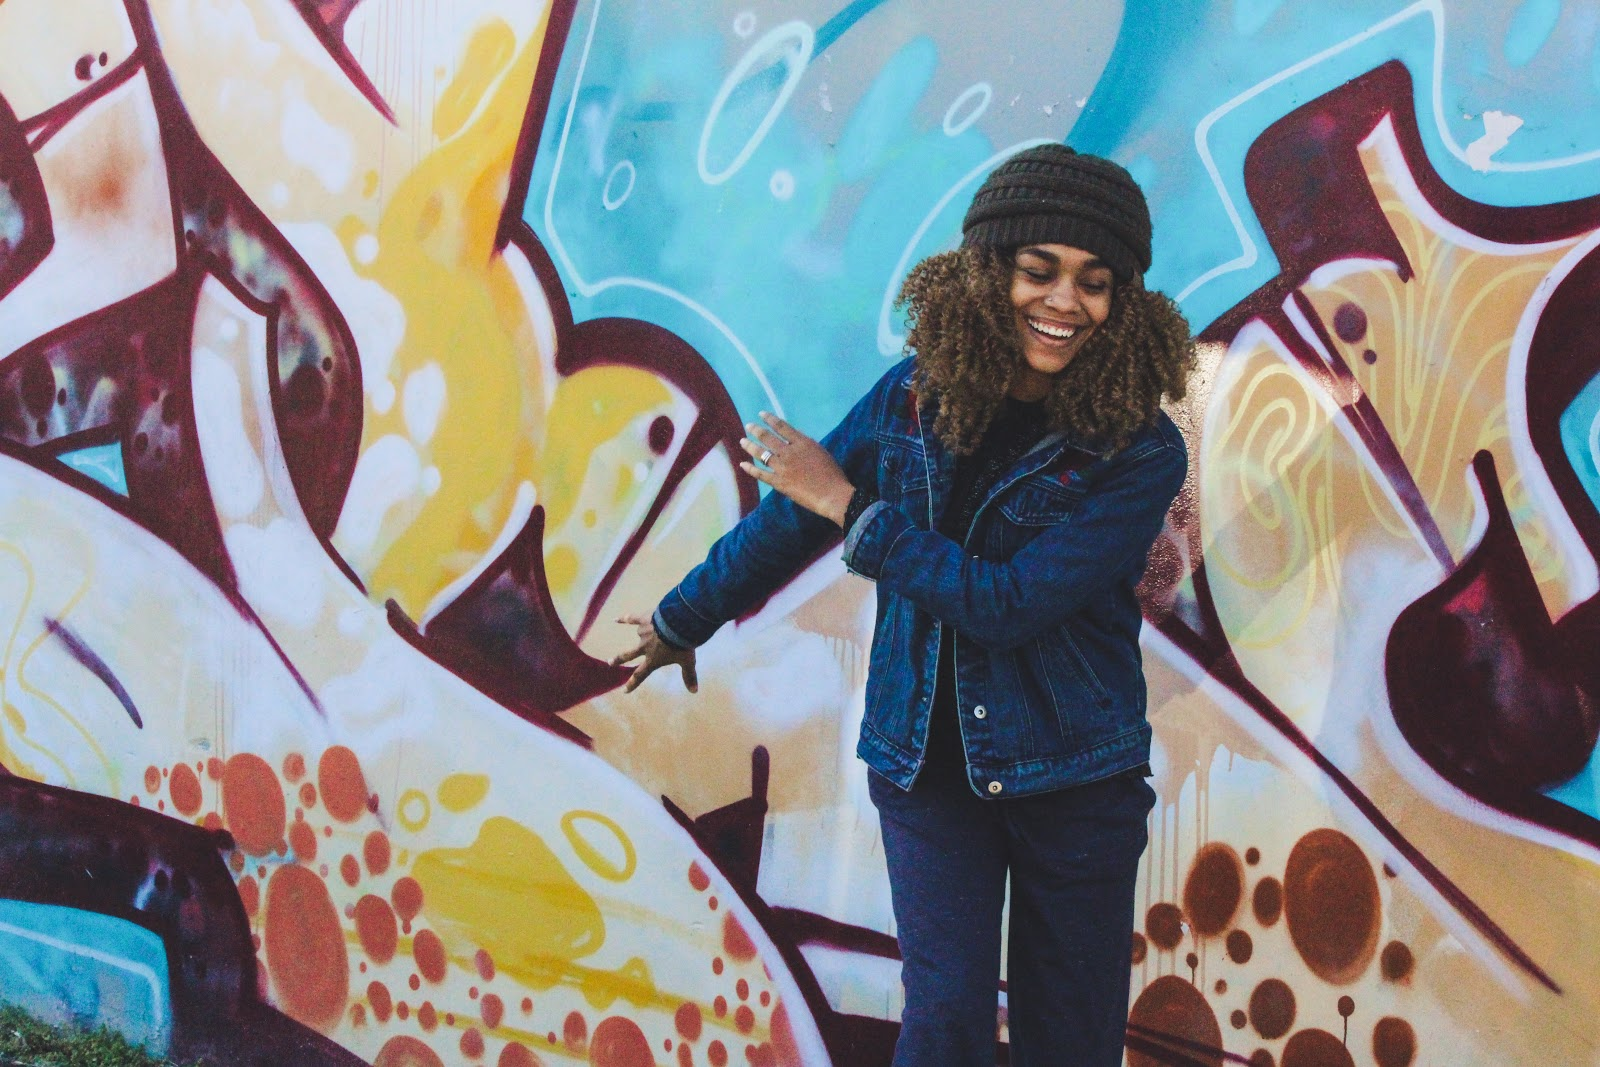 Gut rot: A happy woman in front of a colorful wall of graffiti